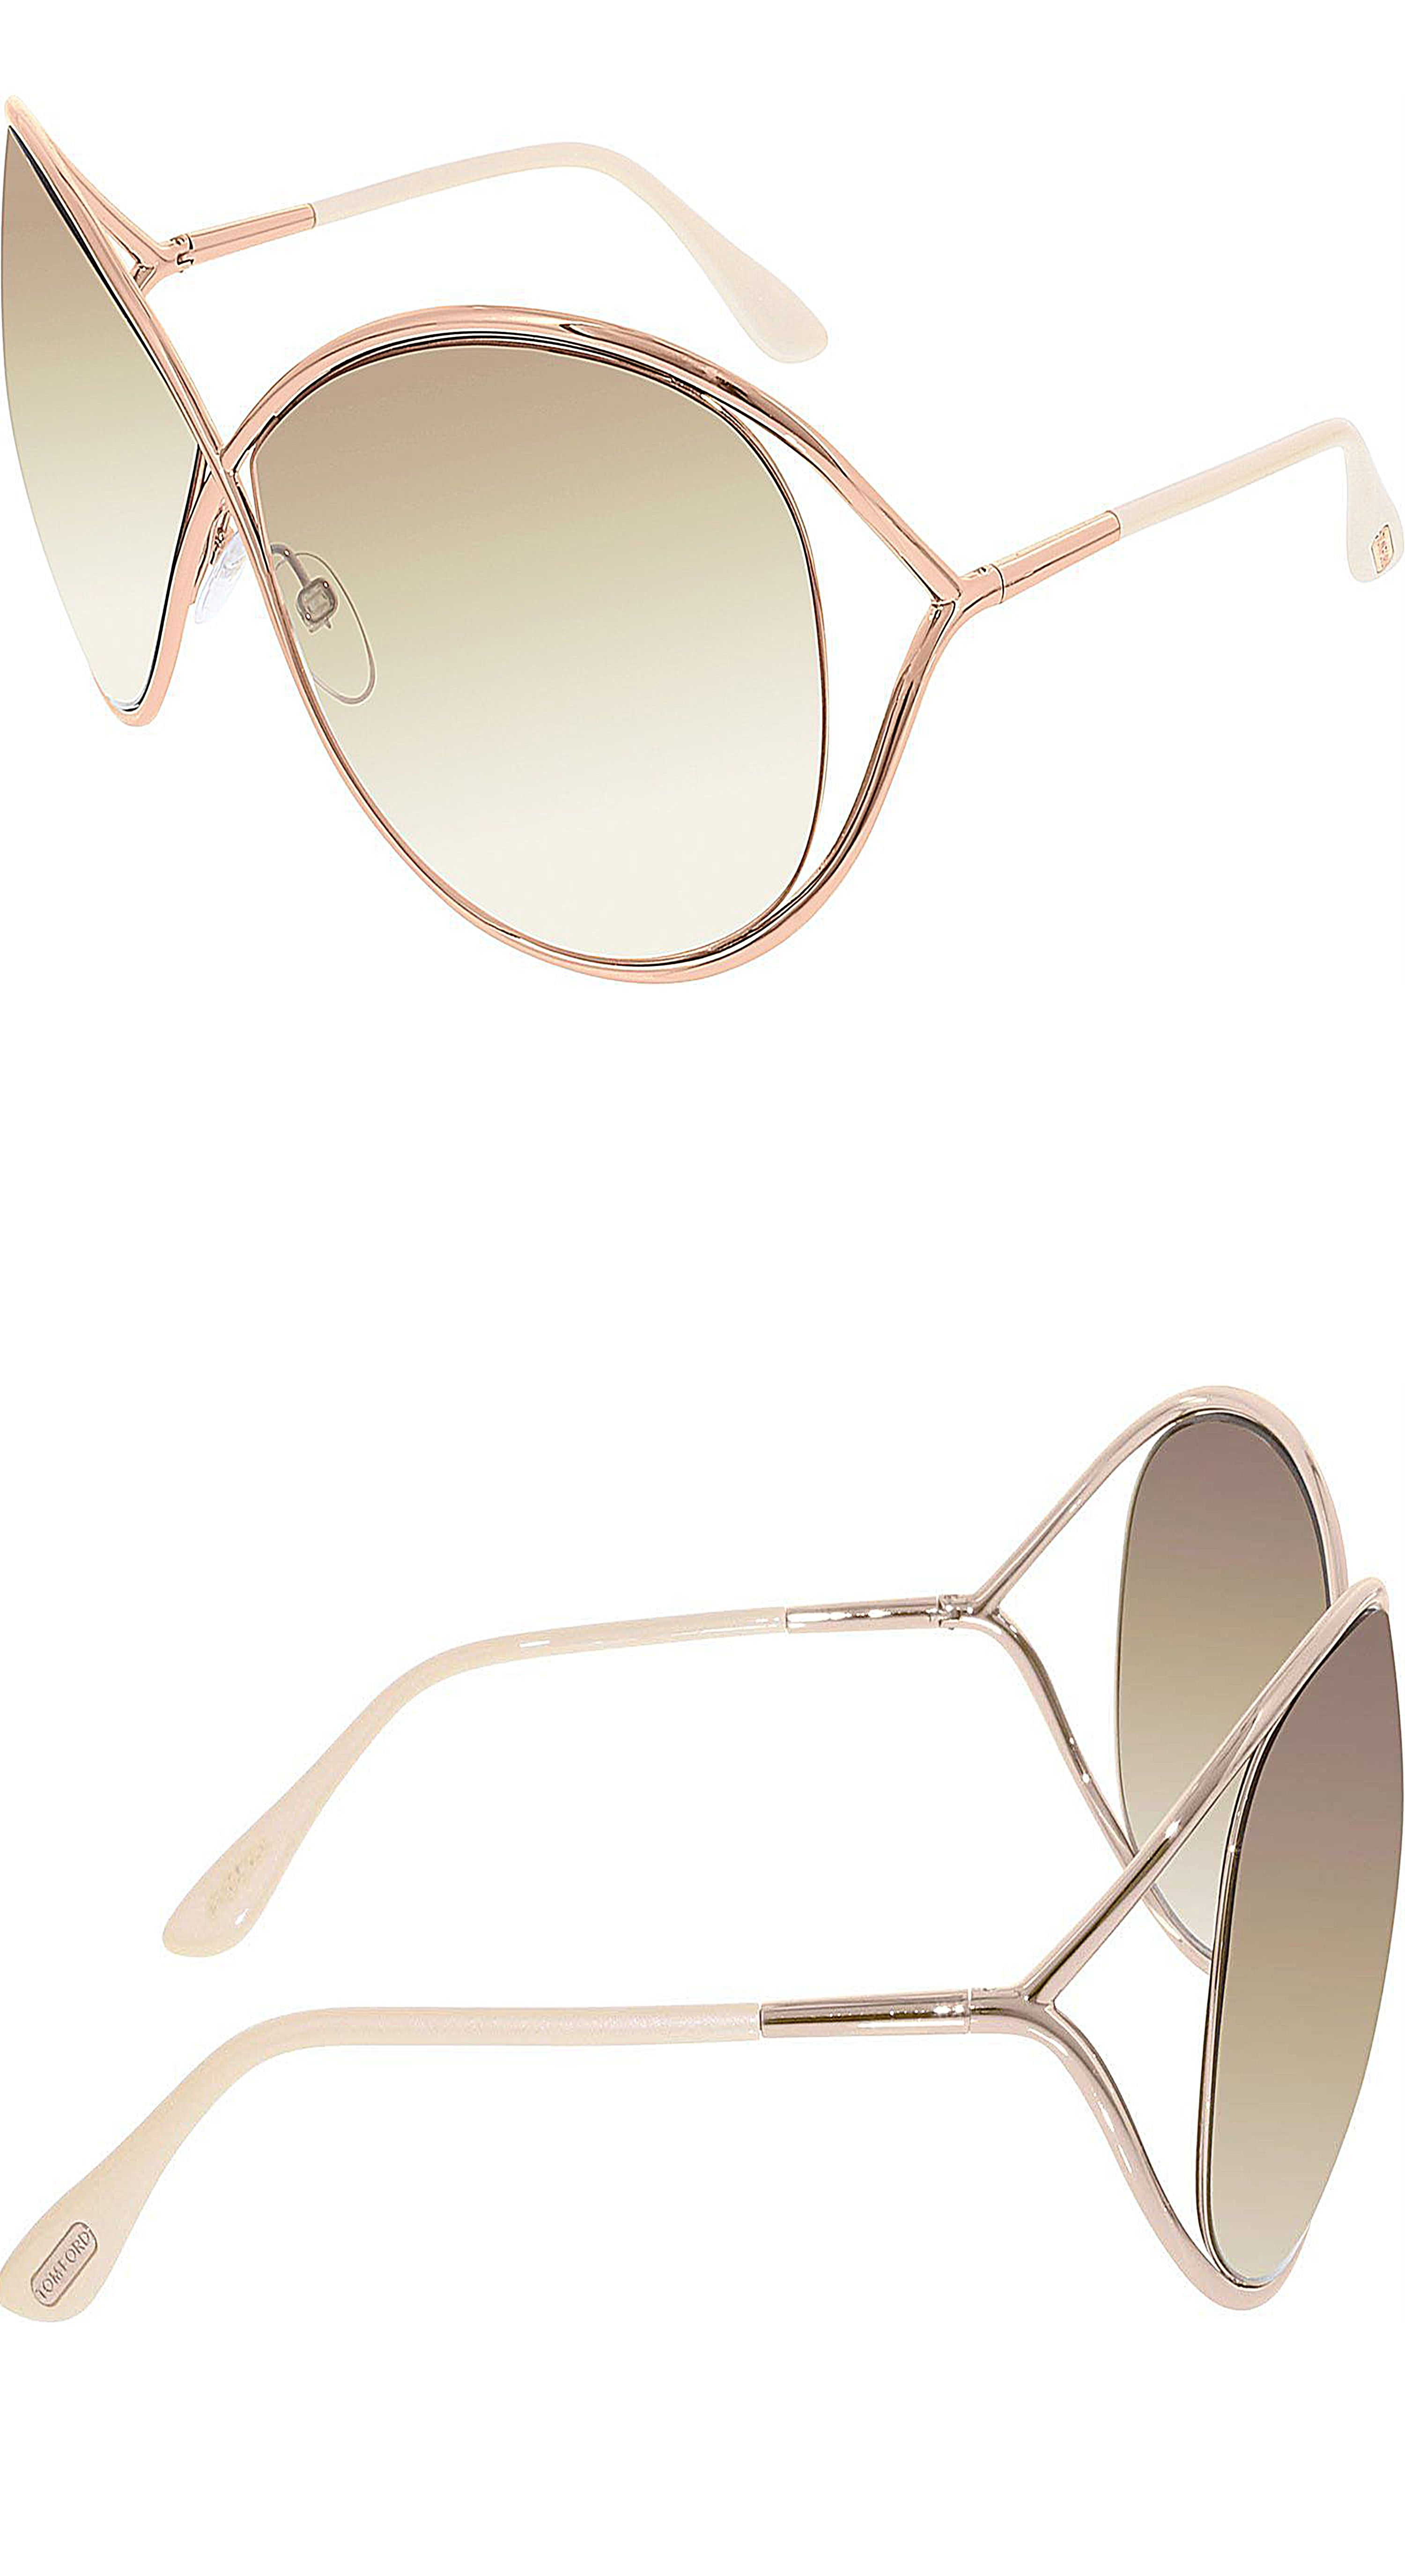 e2d89a4ae64 Authentic Tom Ford Sunglasses  MIRANDA TF130 available in multiple womens  sunglasses